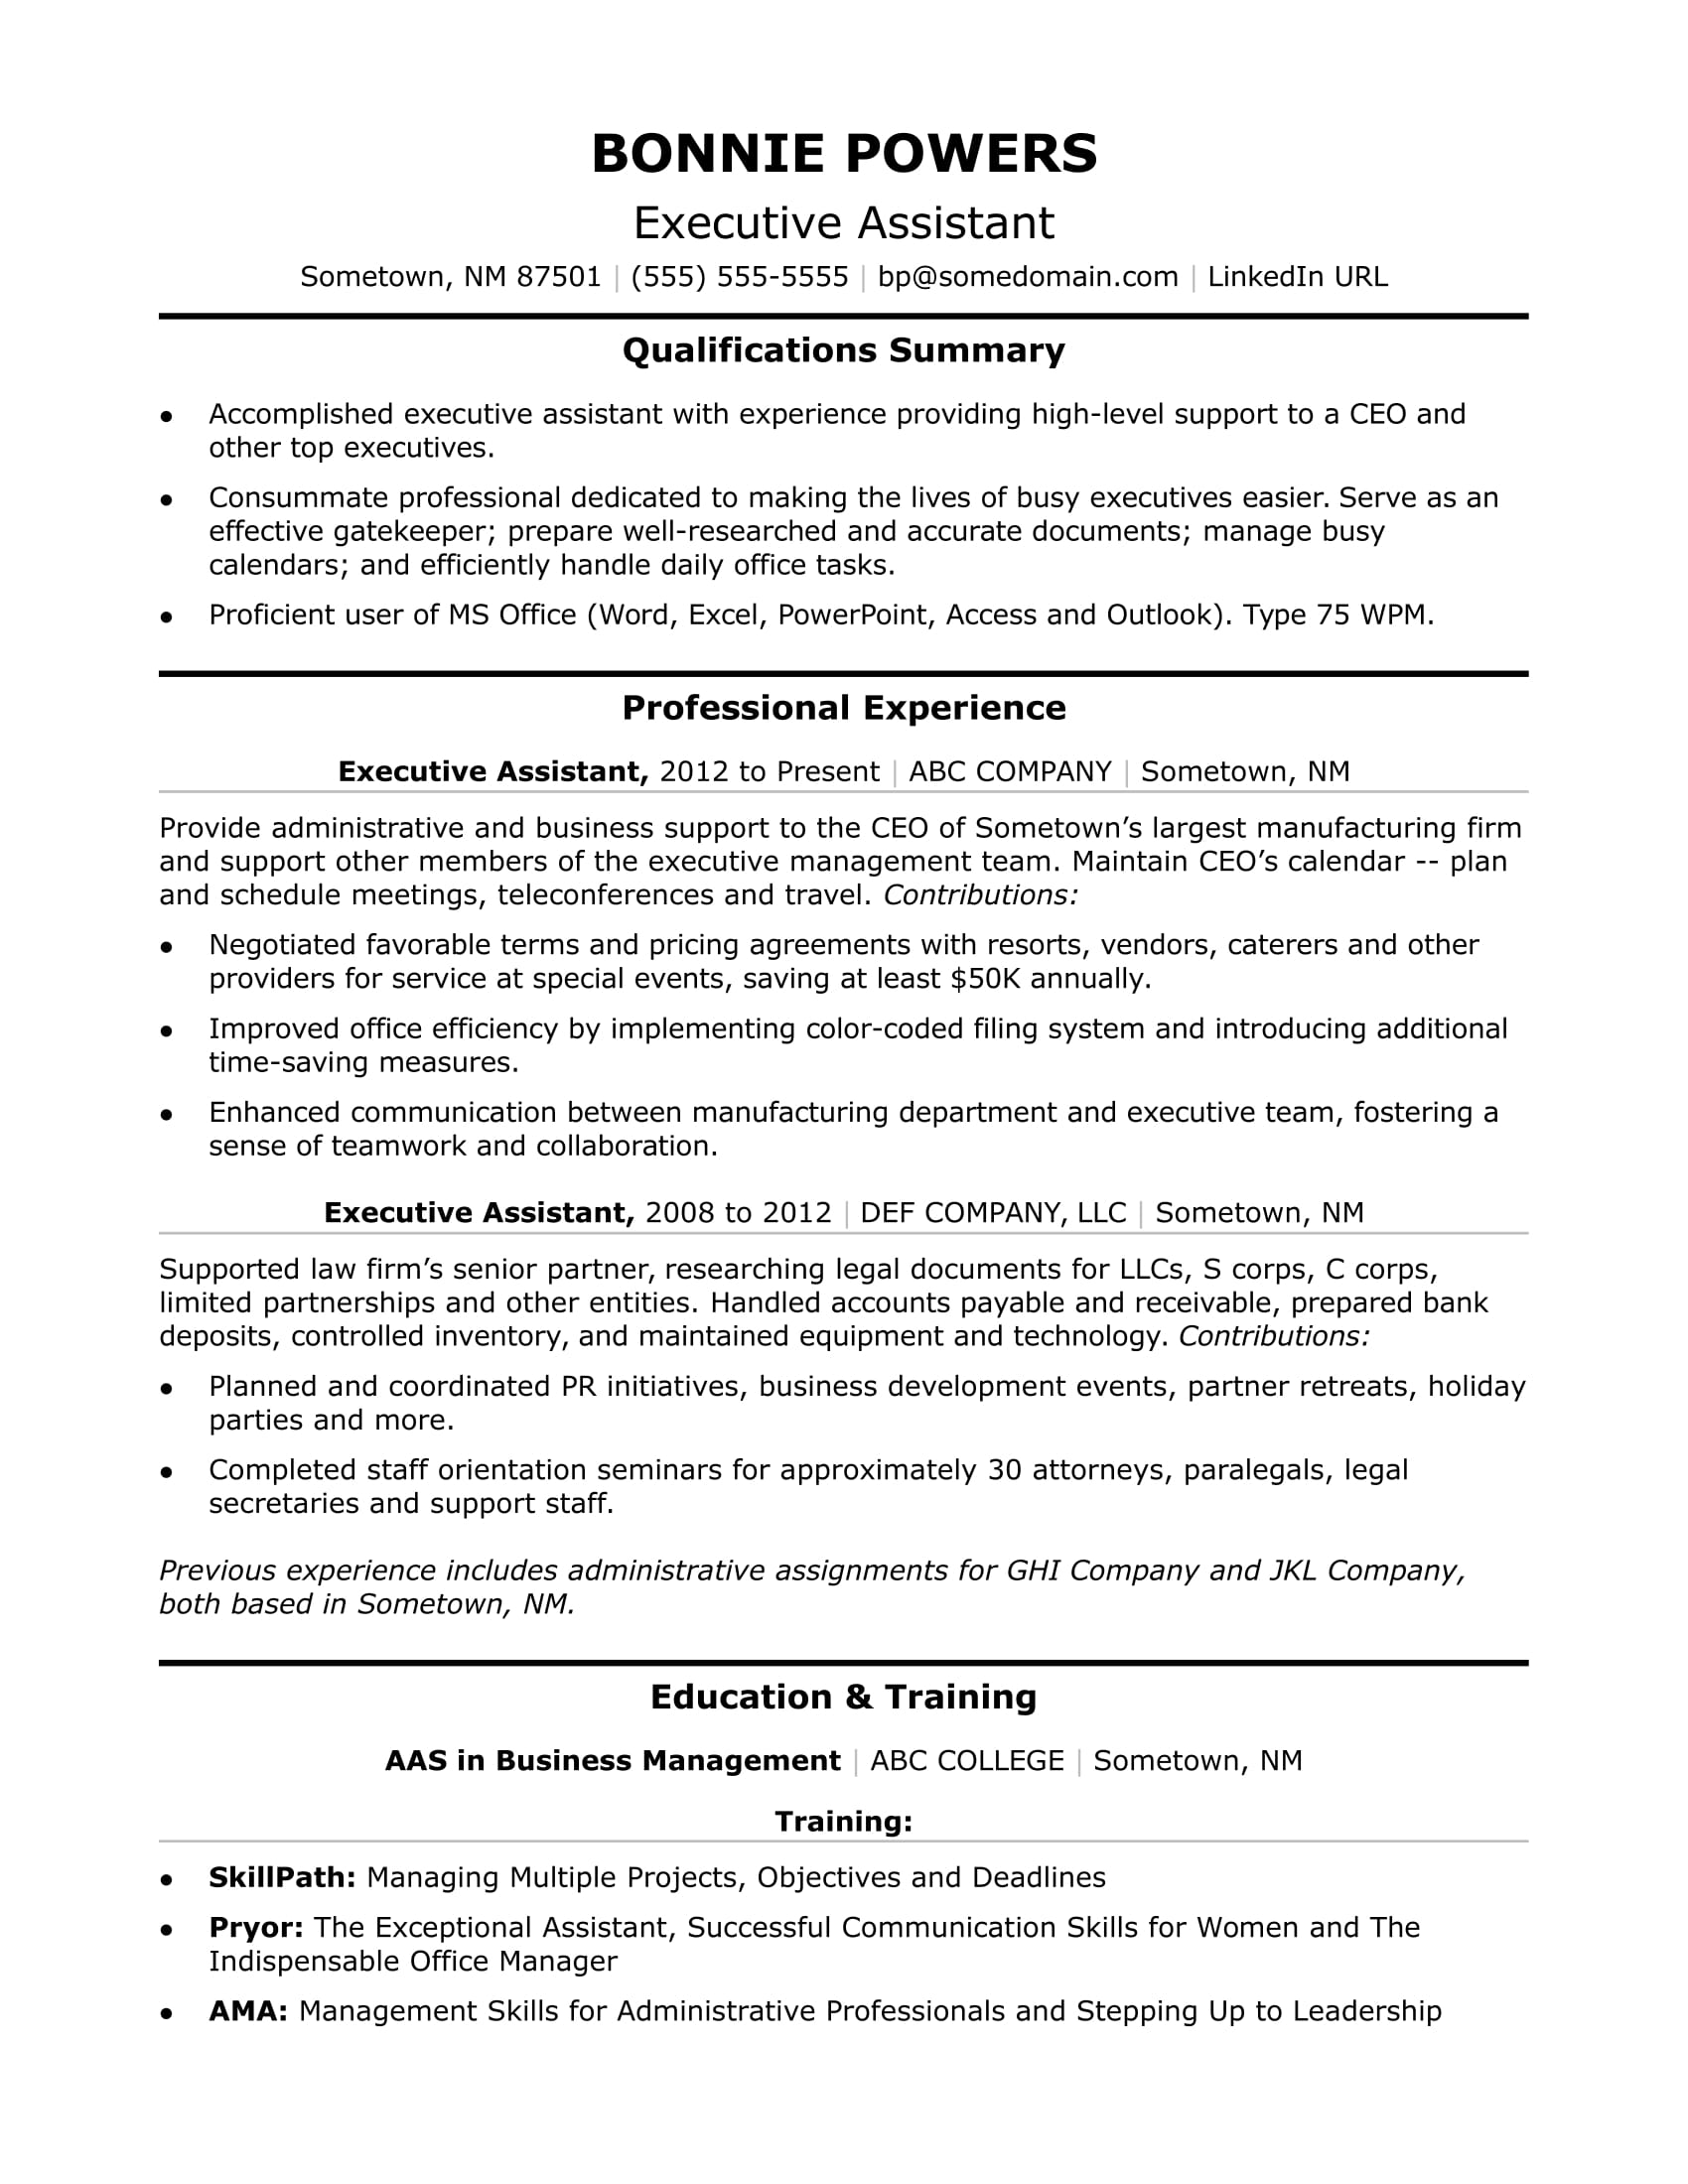 Executive Administrative Assistant Resume Sample  Best Administrative Assistant Resume